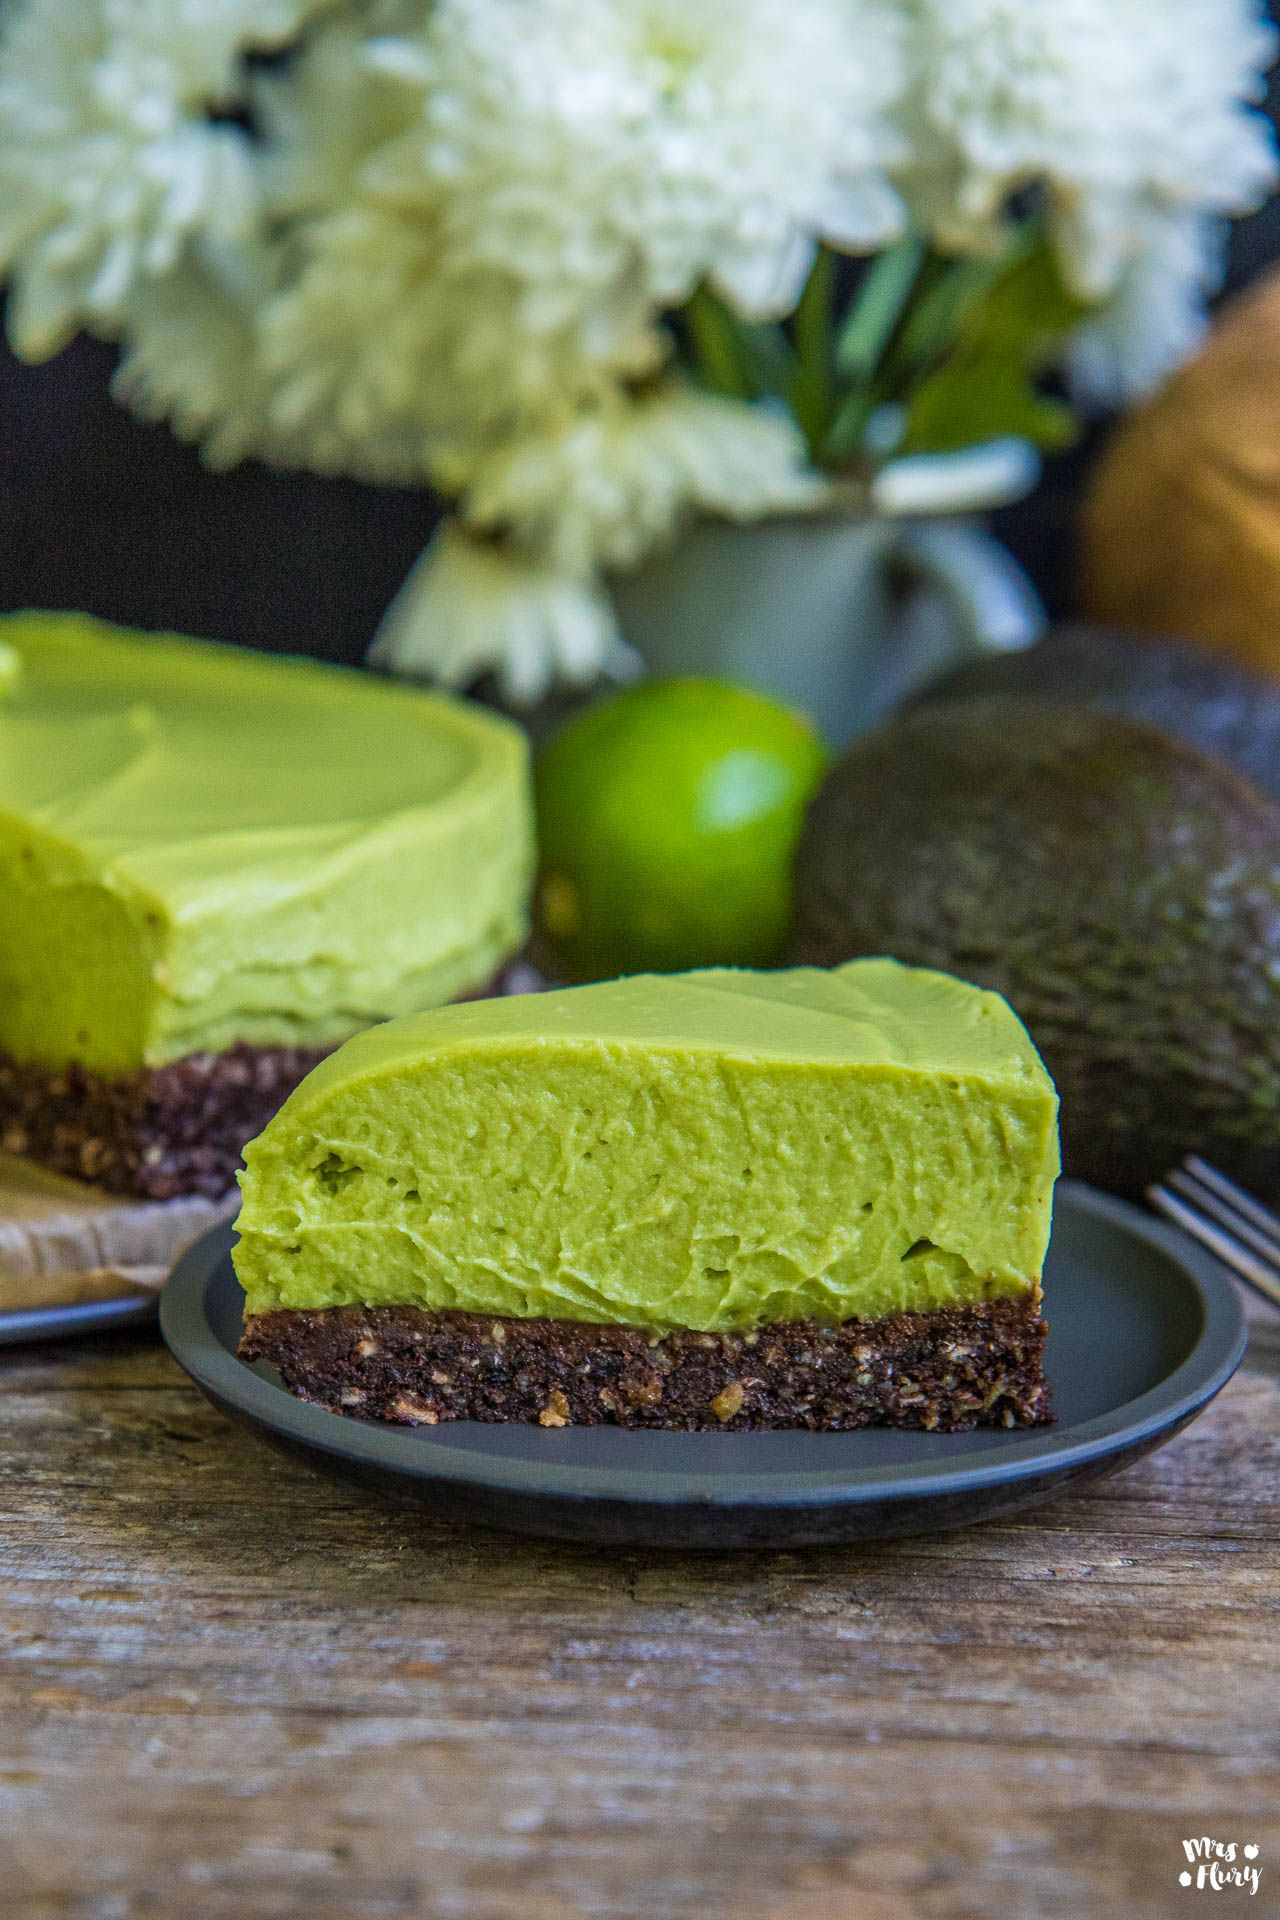 Avocado Cheesecake Vegan Glutenfrei Zuckerfrei Rezept Blogger